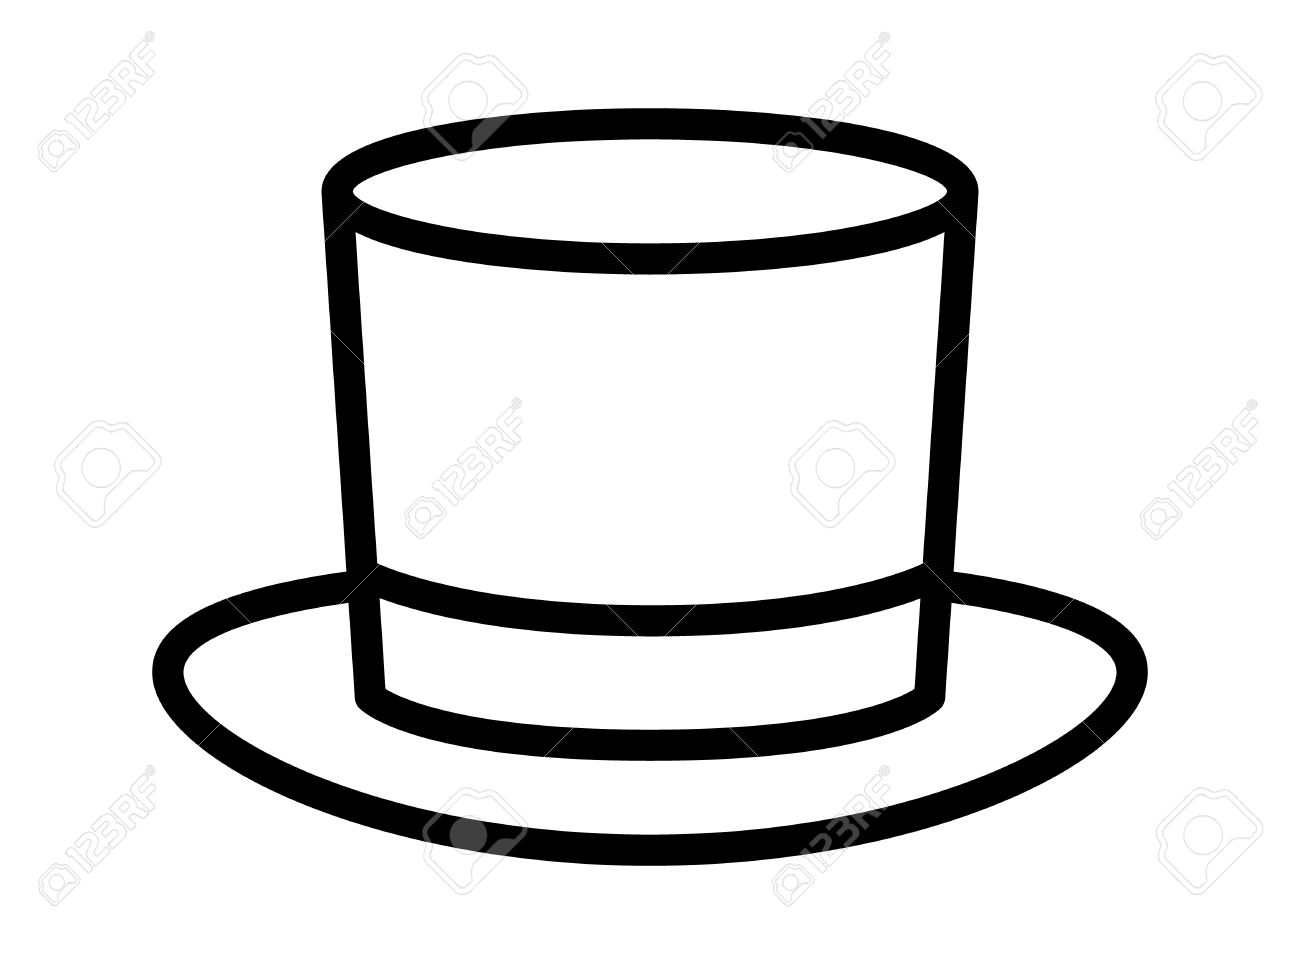 Top Hat Outline 7.